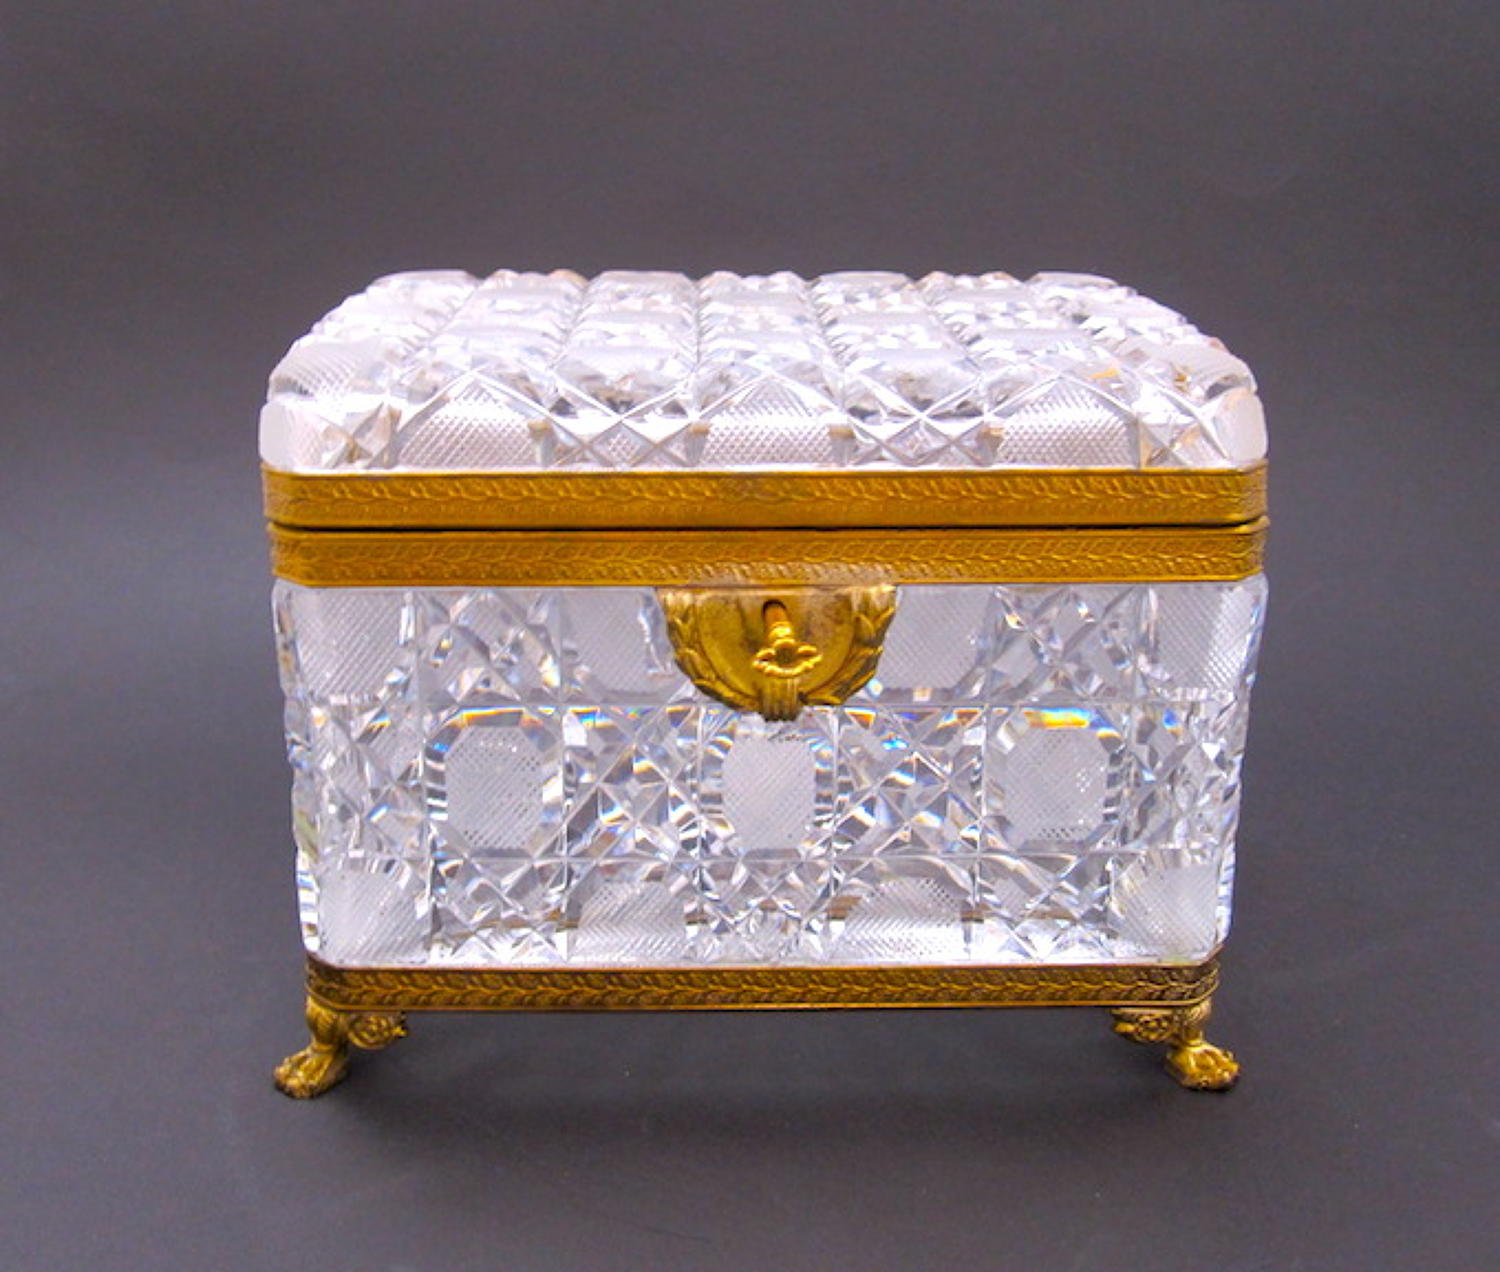 Large BACCARAT Cut Crystal Casket & Key